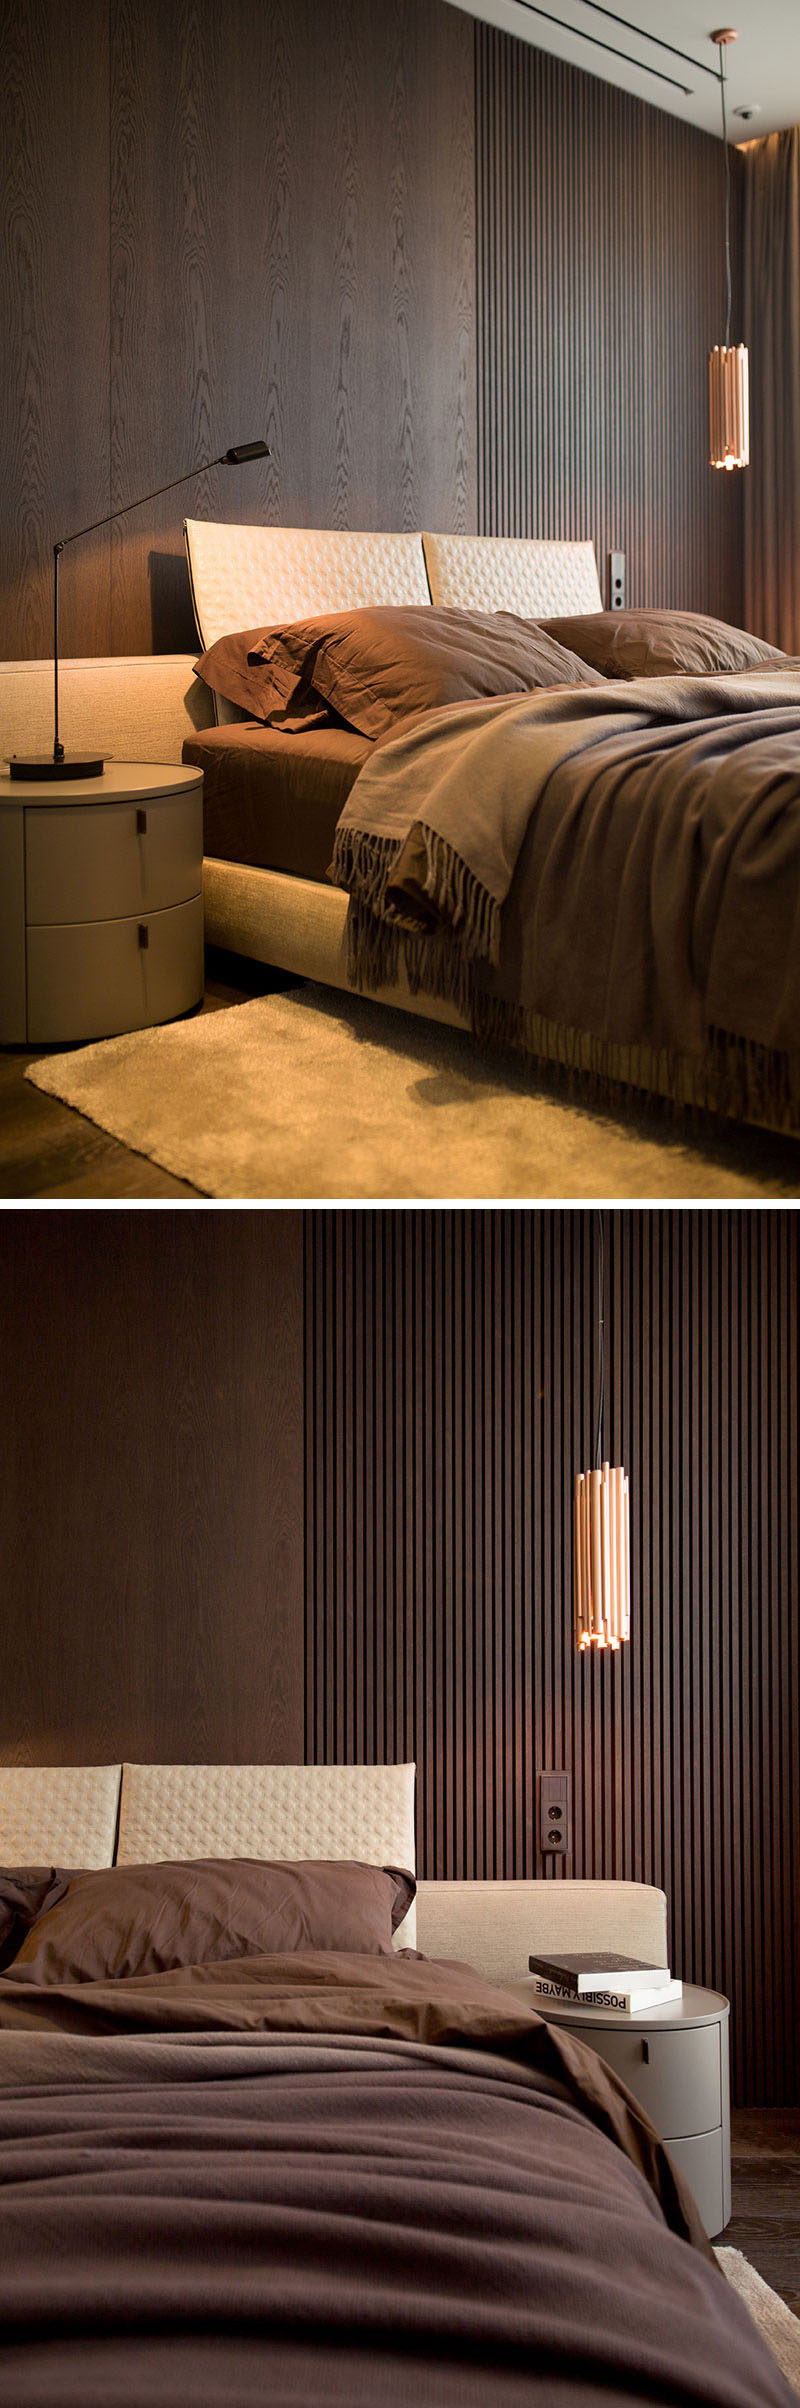 In this modern bedroom, dark wood has been used as an accent wall behind the bed, while a single copper light hangs beside the bed. #AccentWall #ModernBedroom